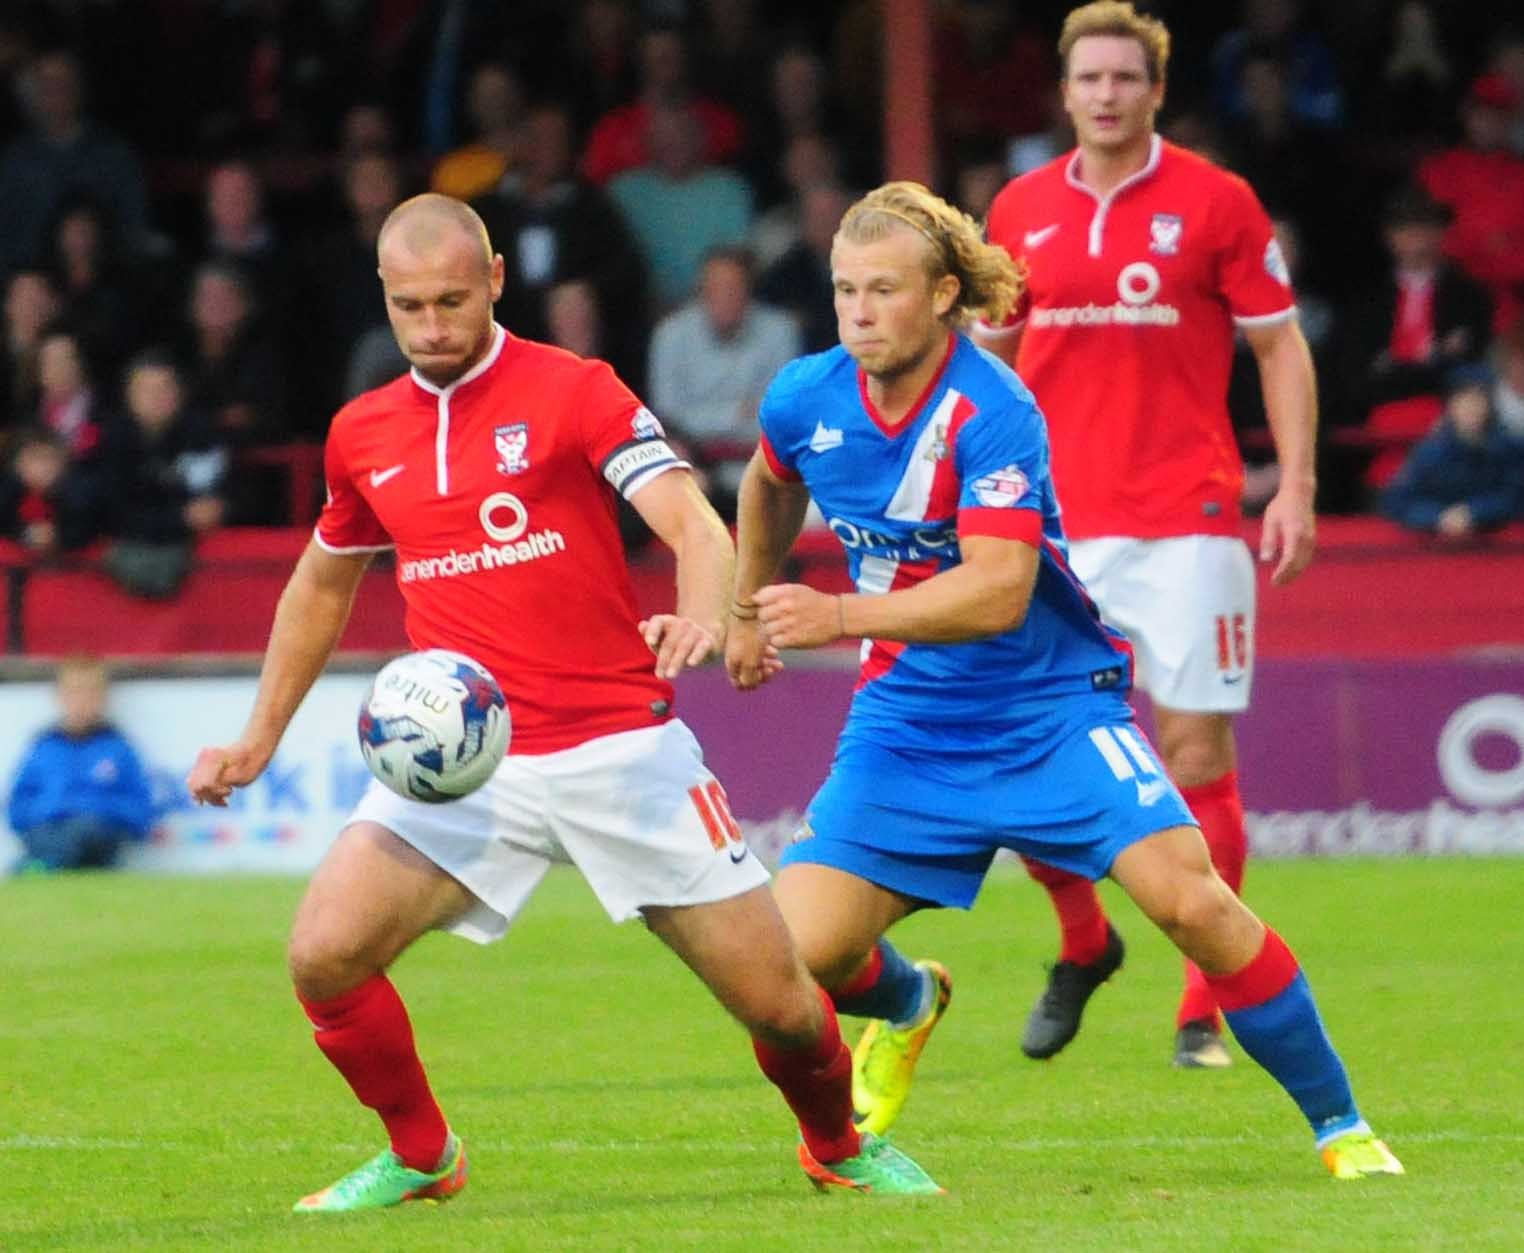 York City 0, Doncaster Rovers 1 - Capital One Cup